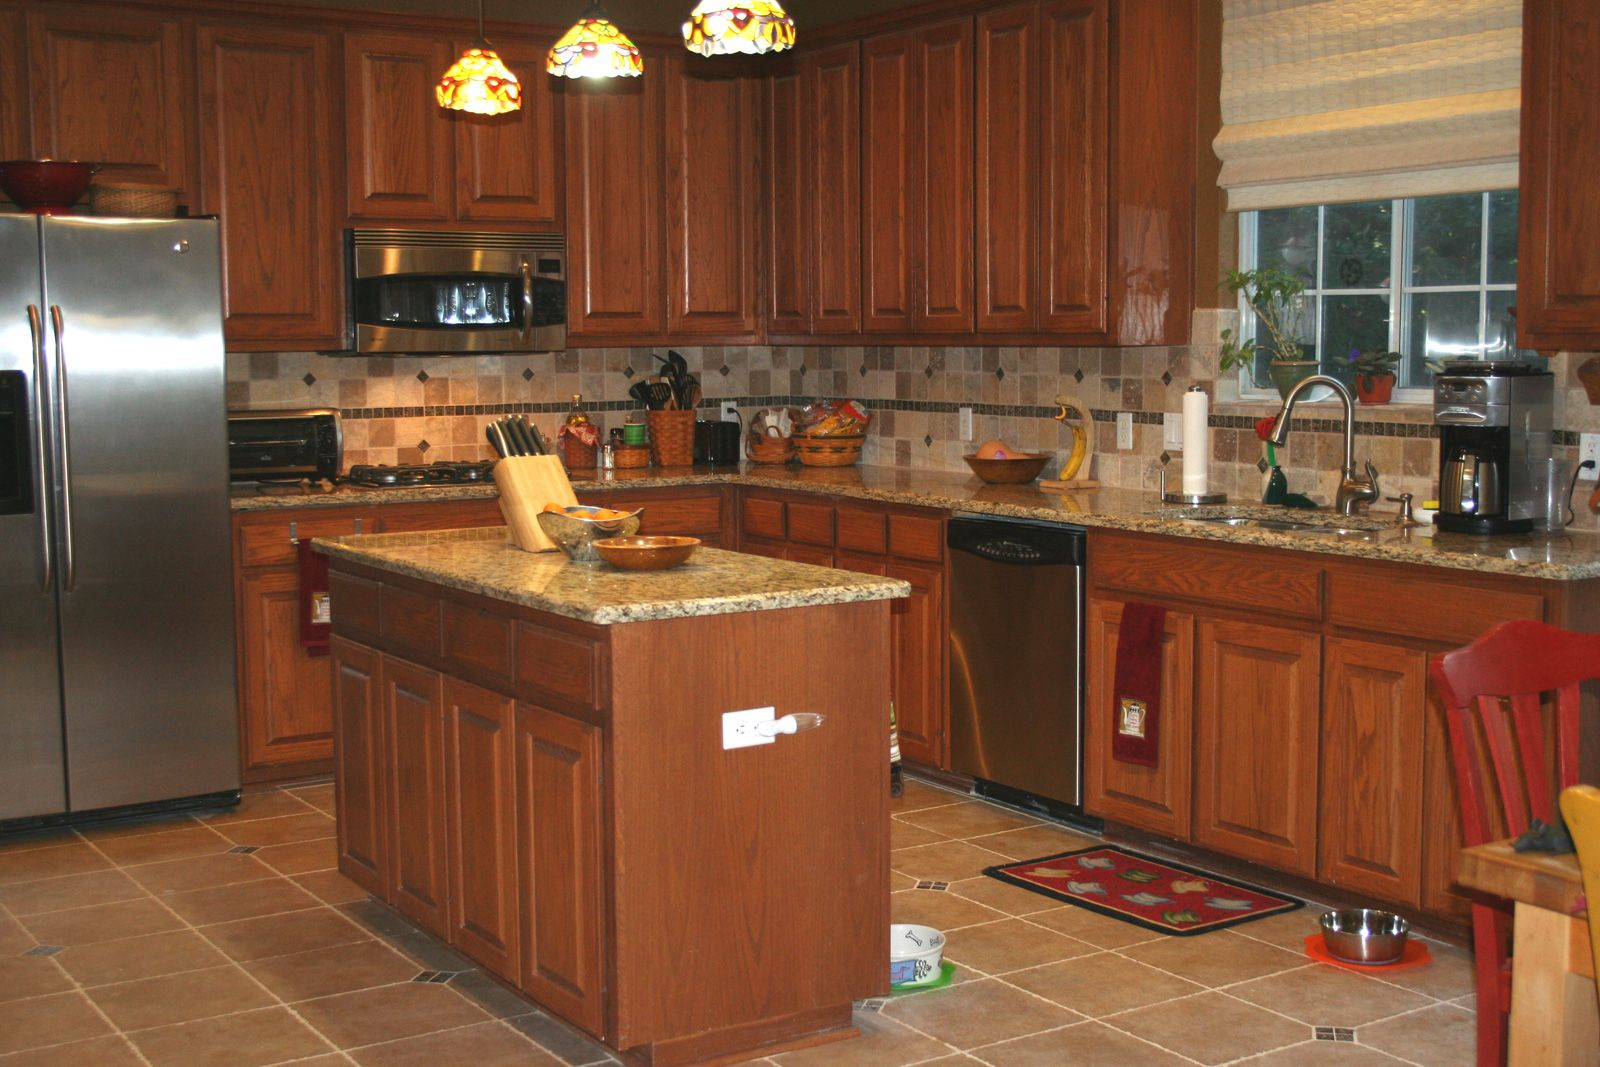 Kitchen Tiles Granite Back Splash Designs For Kitchen With Beige And Brown